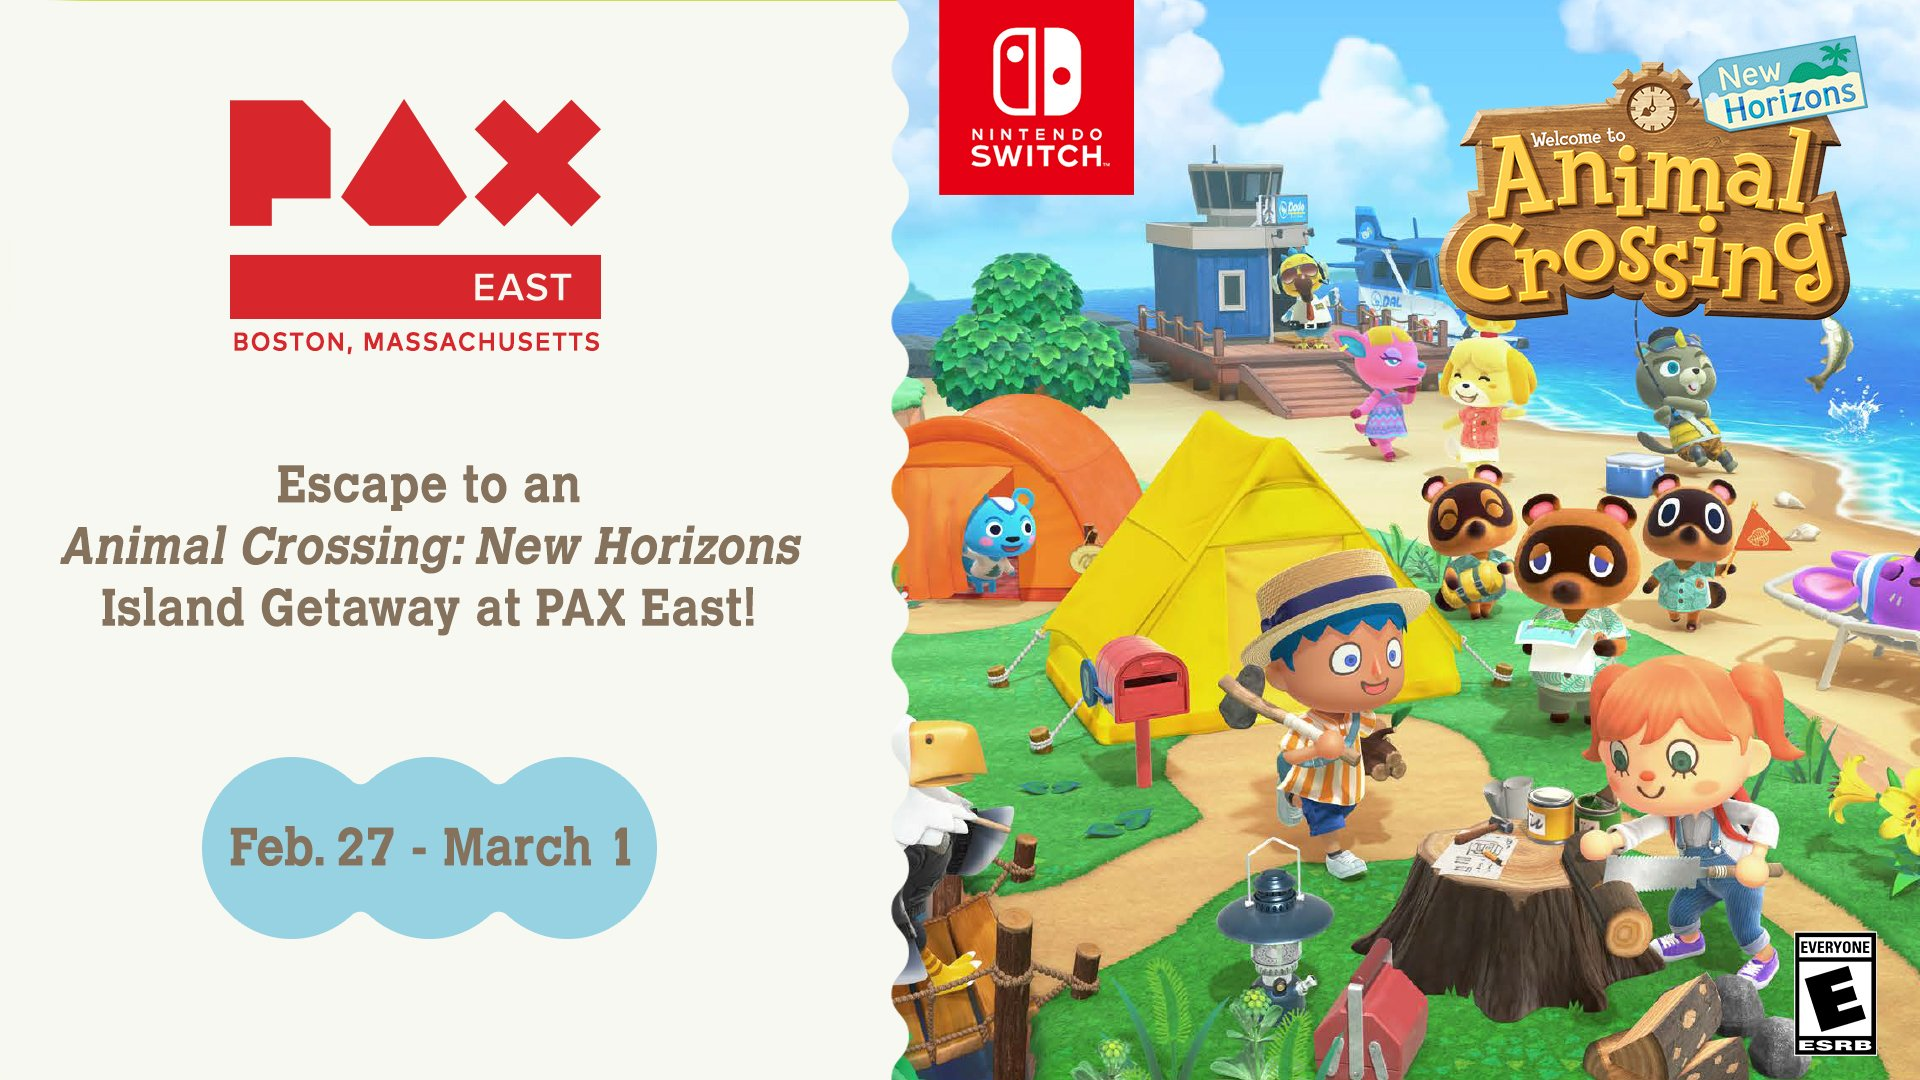 Nintendo confirms Animal Crossing booth at PAX East